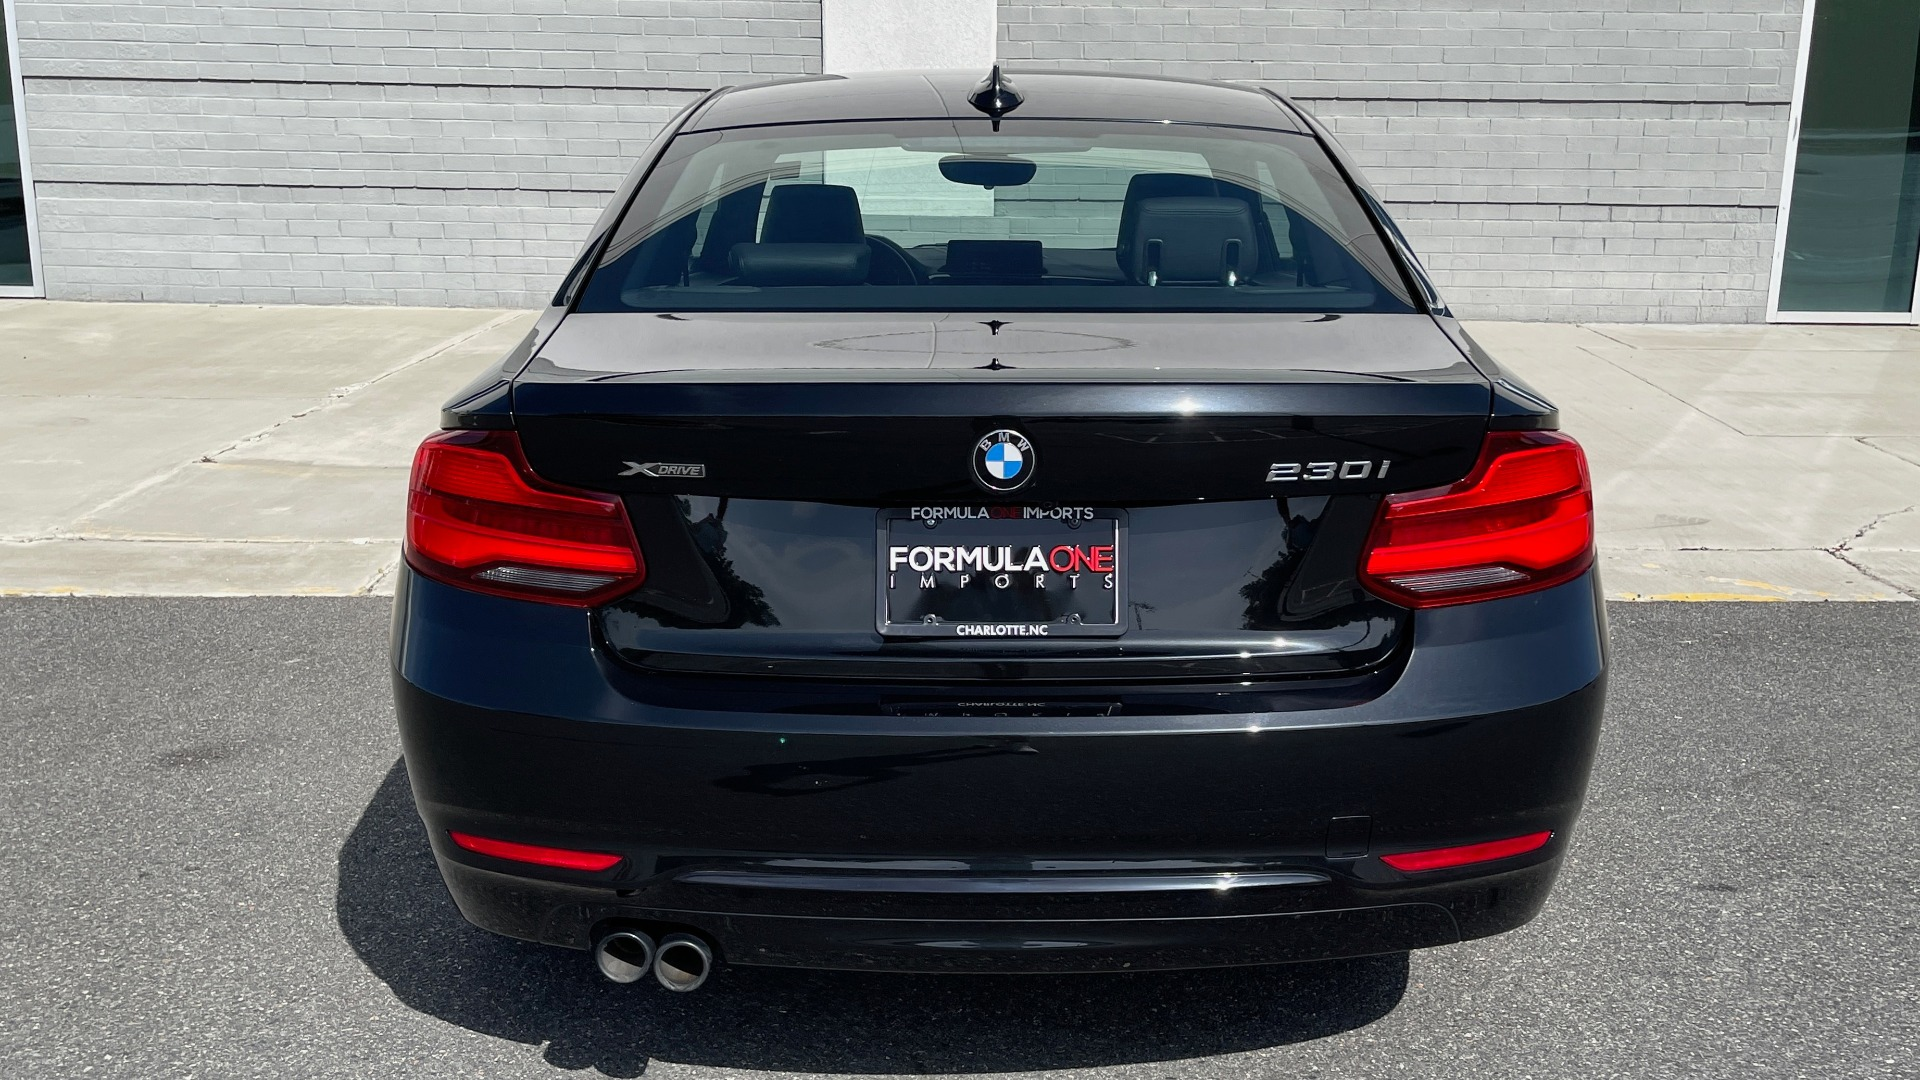 Used 2018 BMW 2 SERIES 230I XDRIVE PREMIUM / CONV PKG / NAV / SUNROOF / REARVIEW for sale $30,795 at Formula Imports in Charlotte NC 28227 19